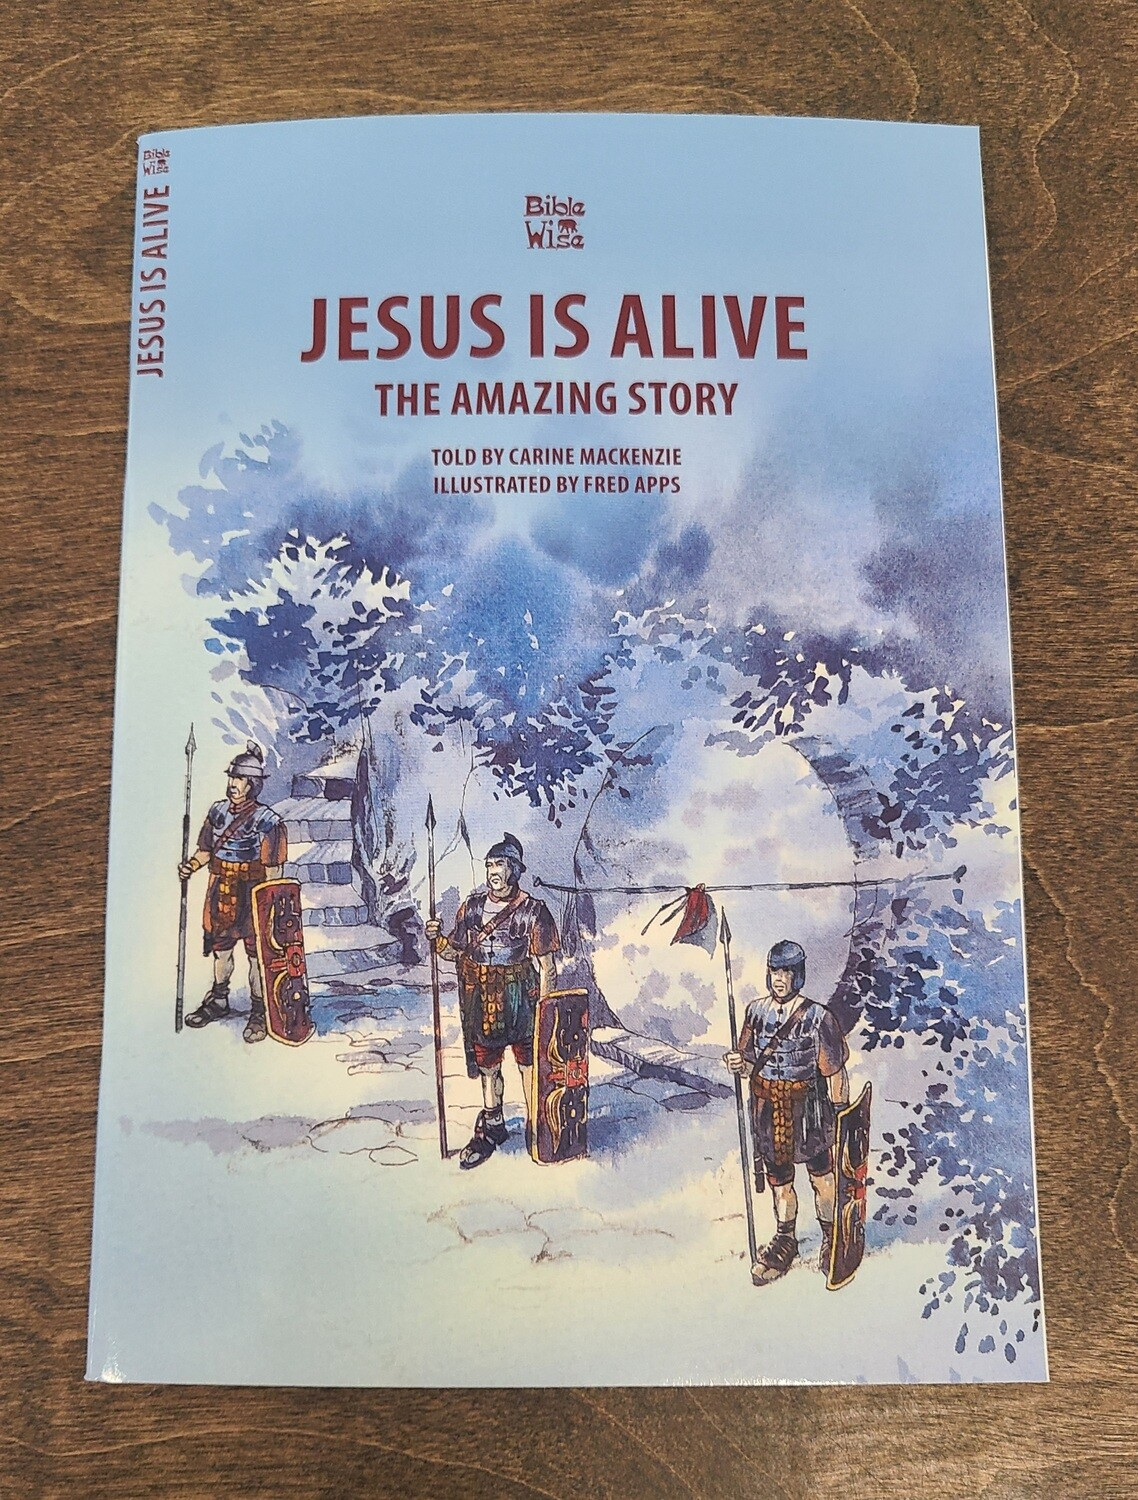 Jesus is Alive: The Amazing Story by Carine Mackenzie and Fred Apps